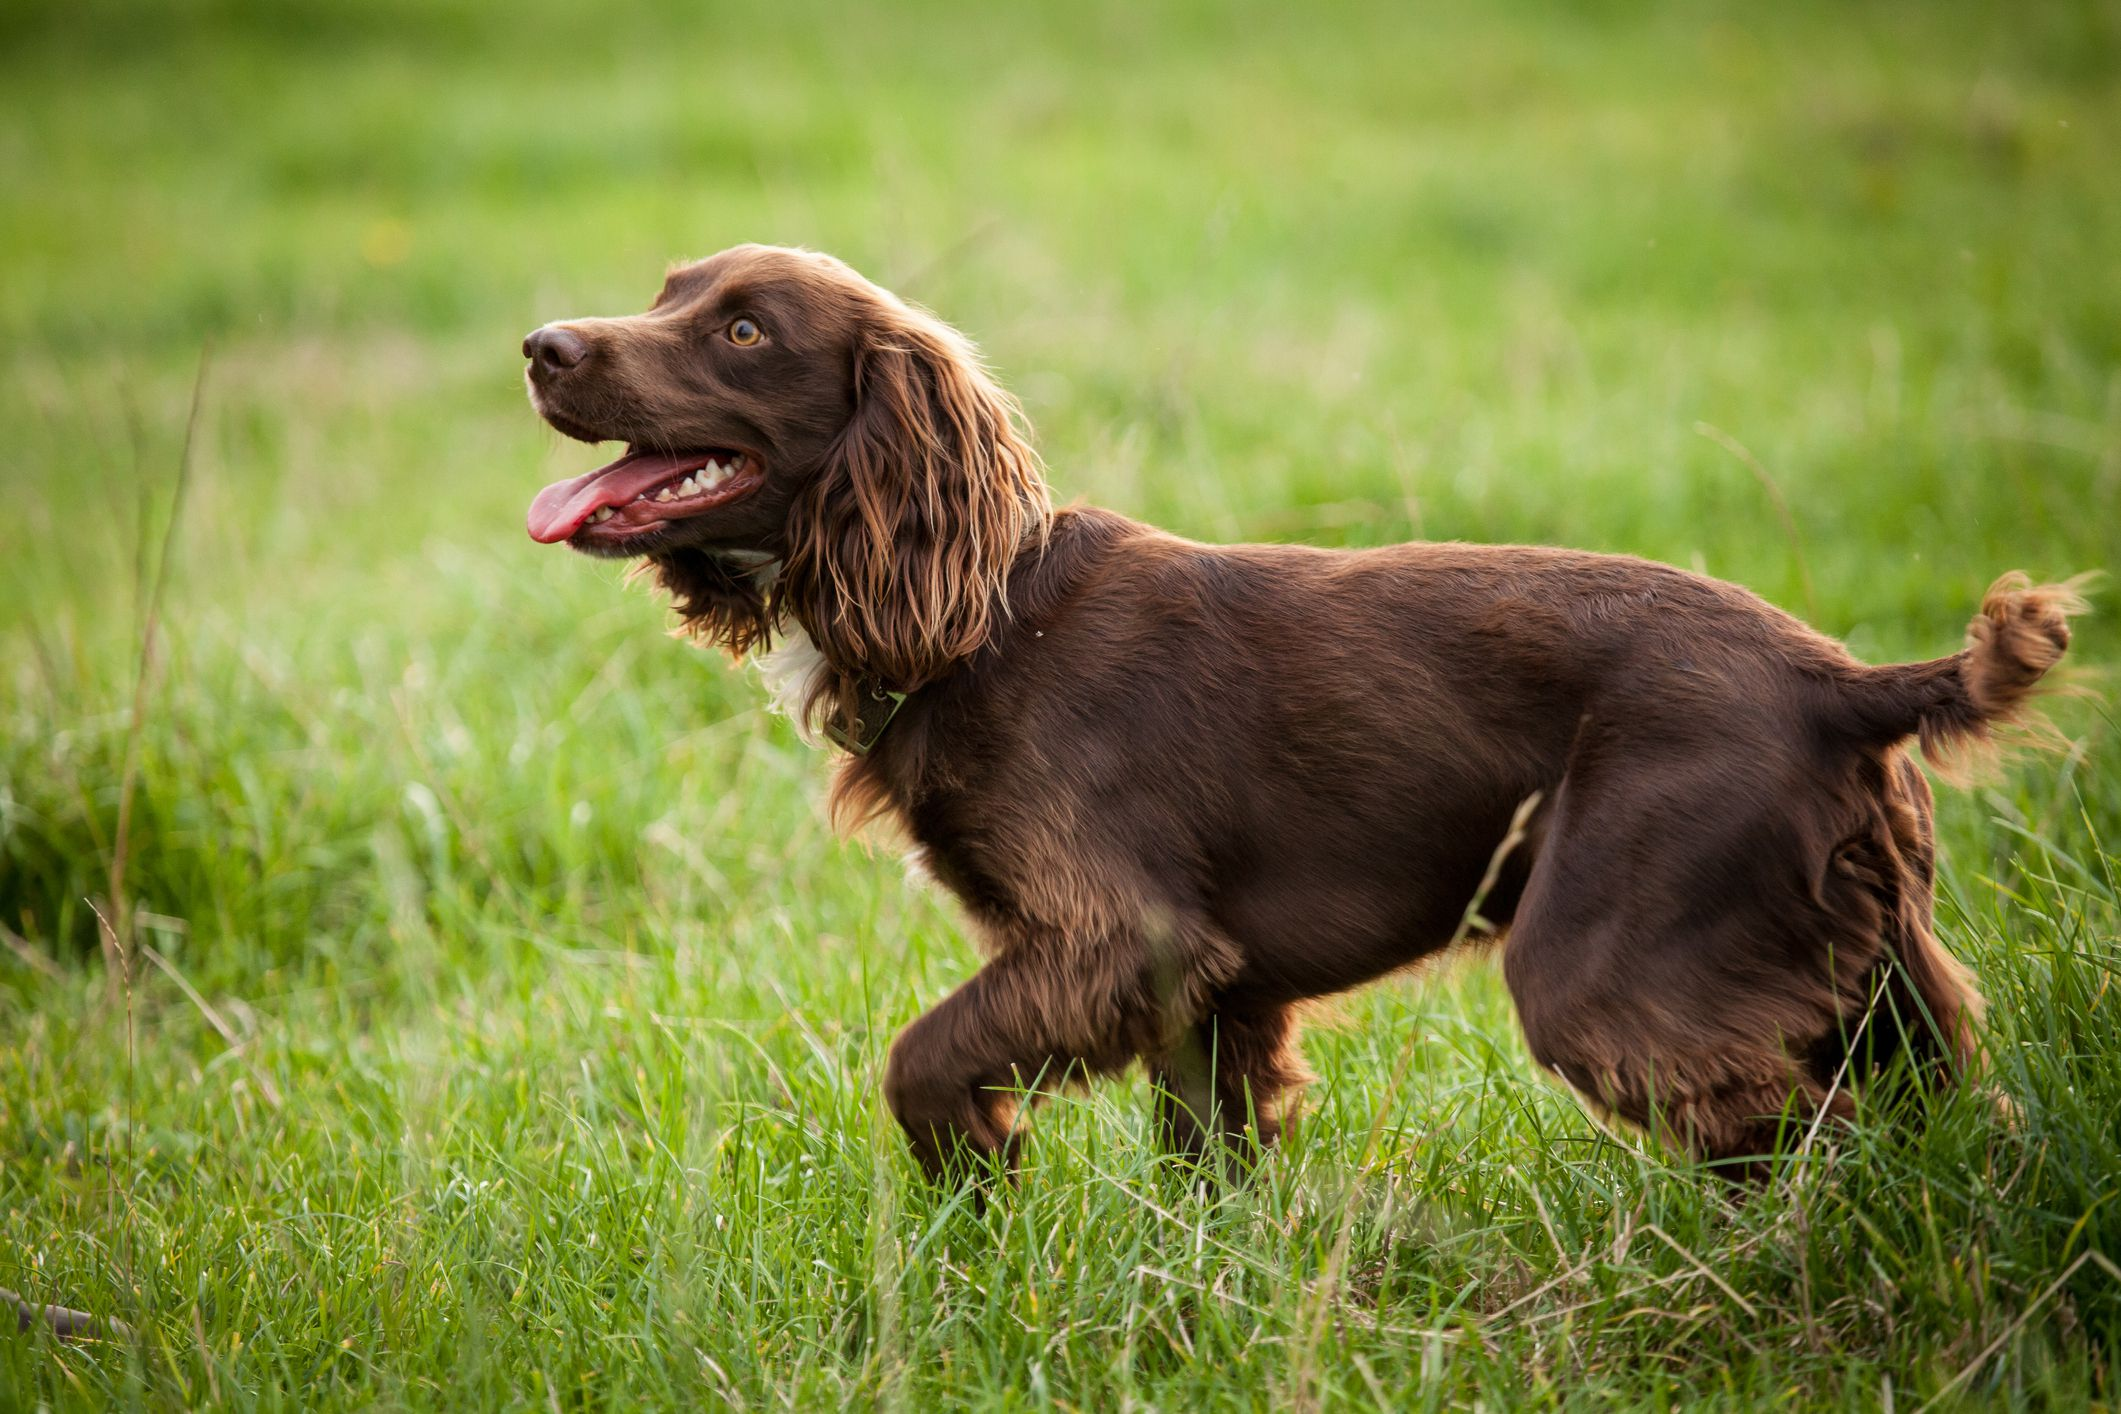 Boykin Spaniel - Full Profile, History, and Care